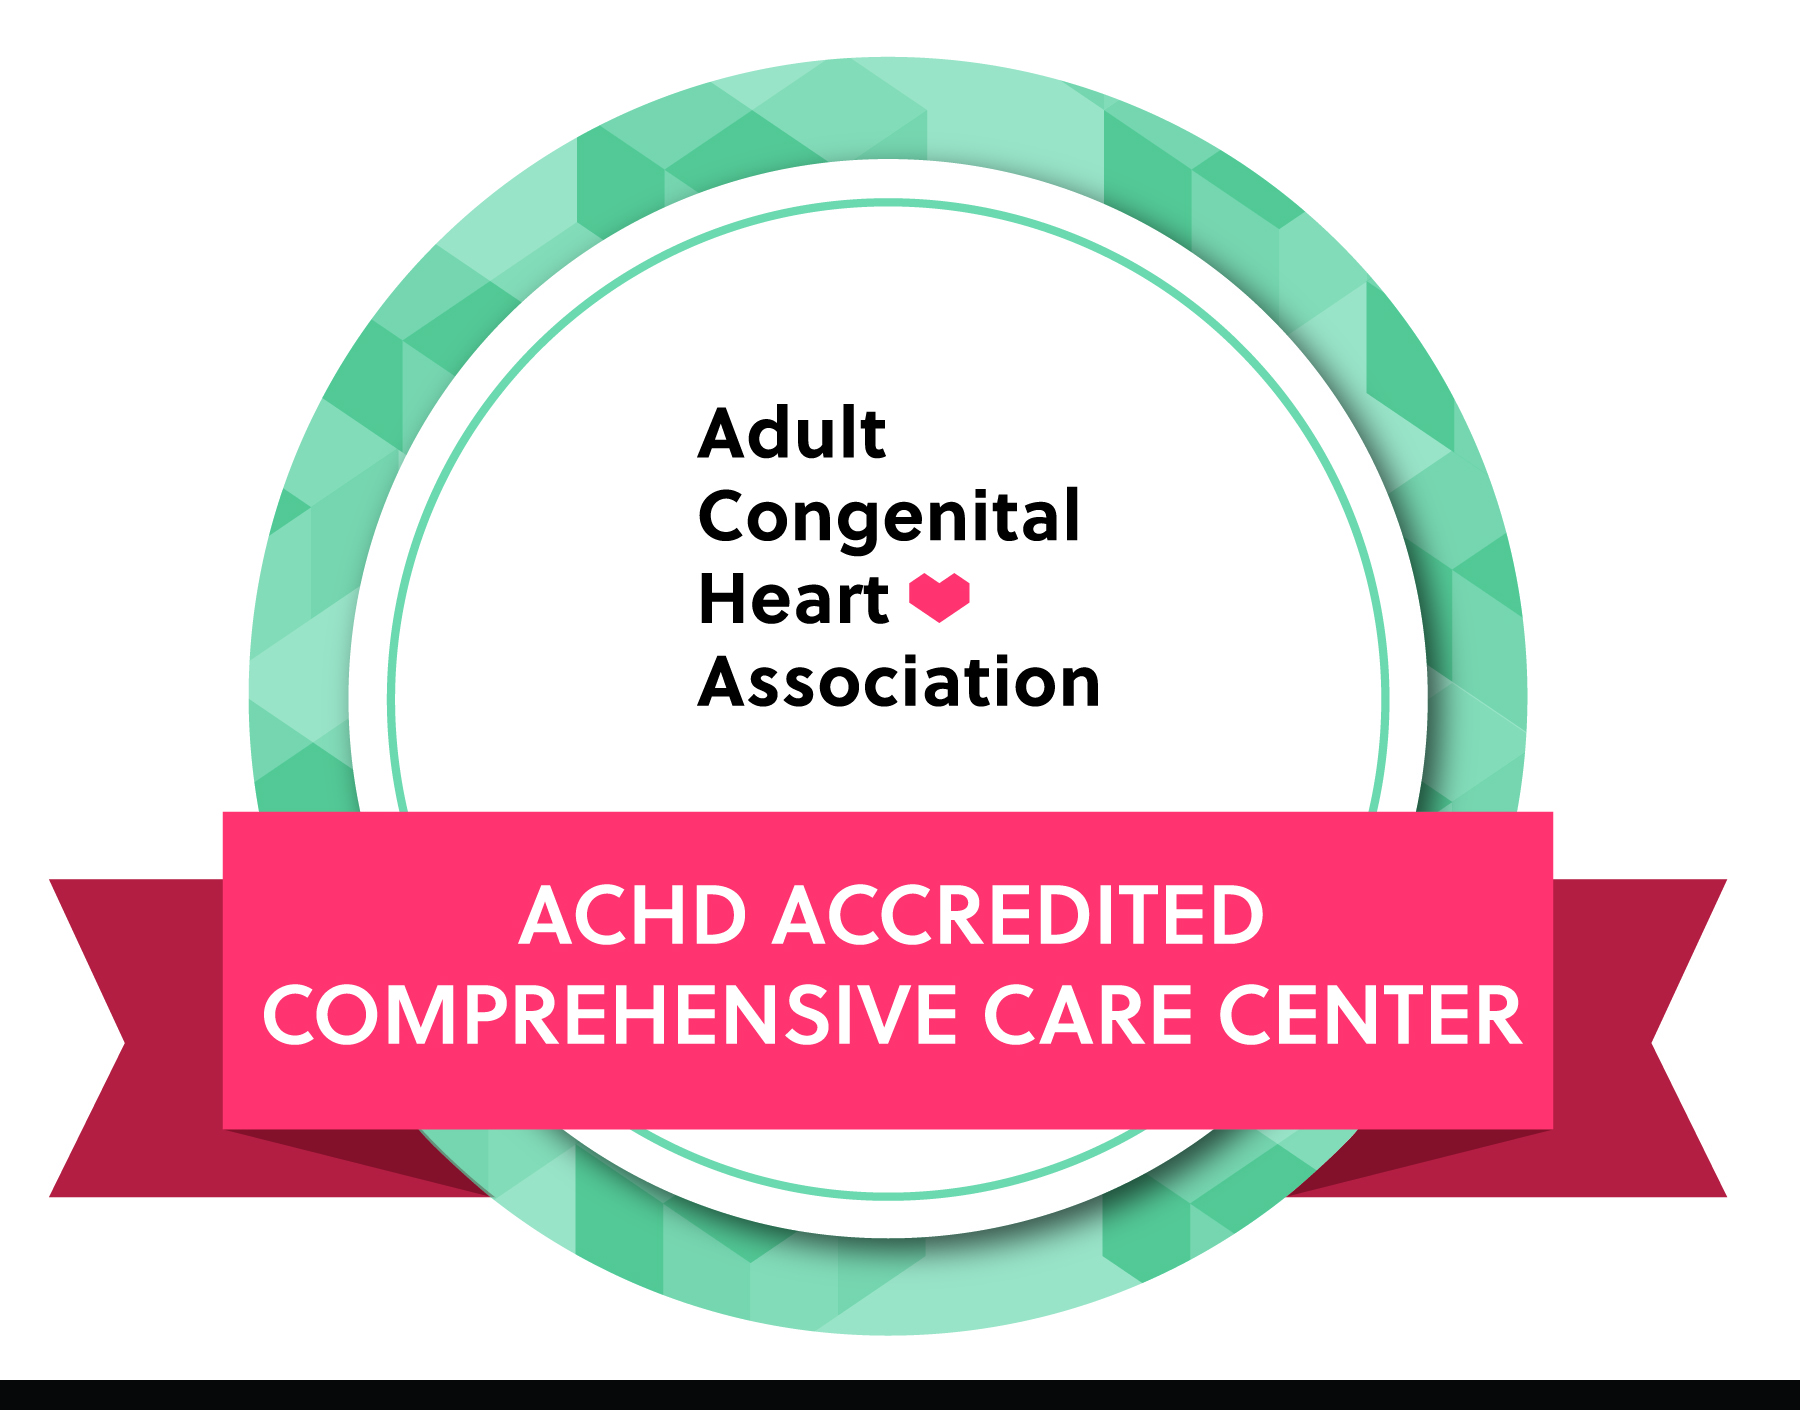 Adult Congenital Heart Disease Accredited Comprehensive Care Center